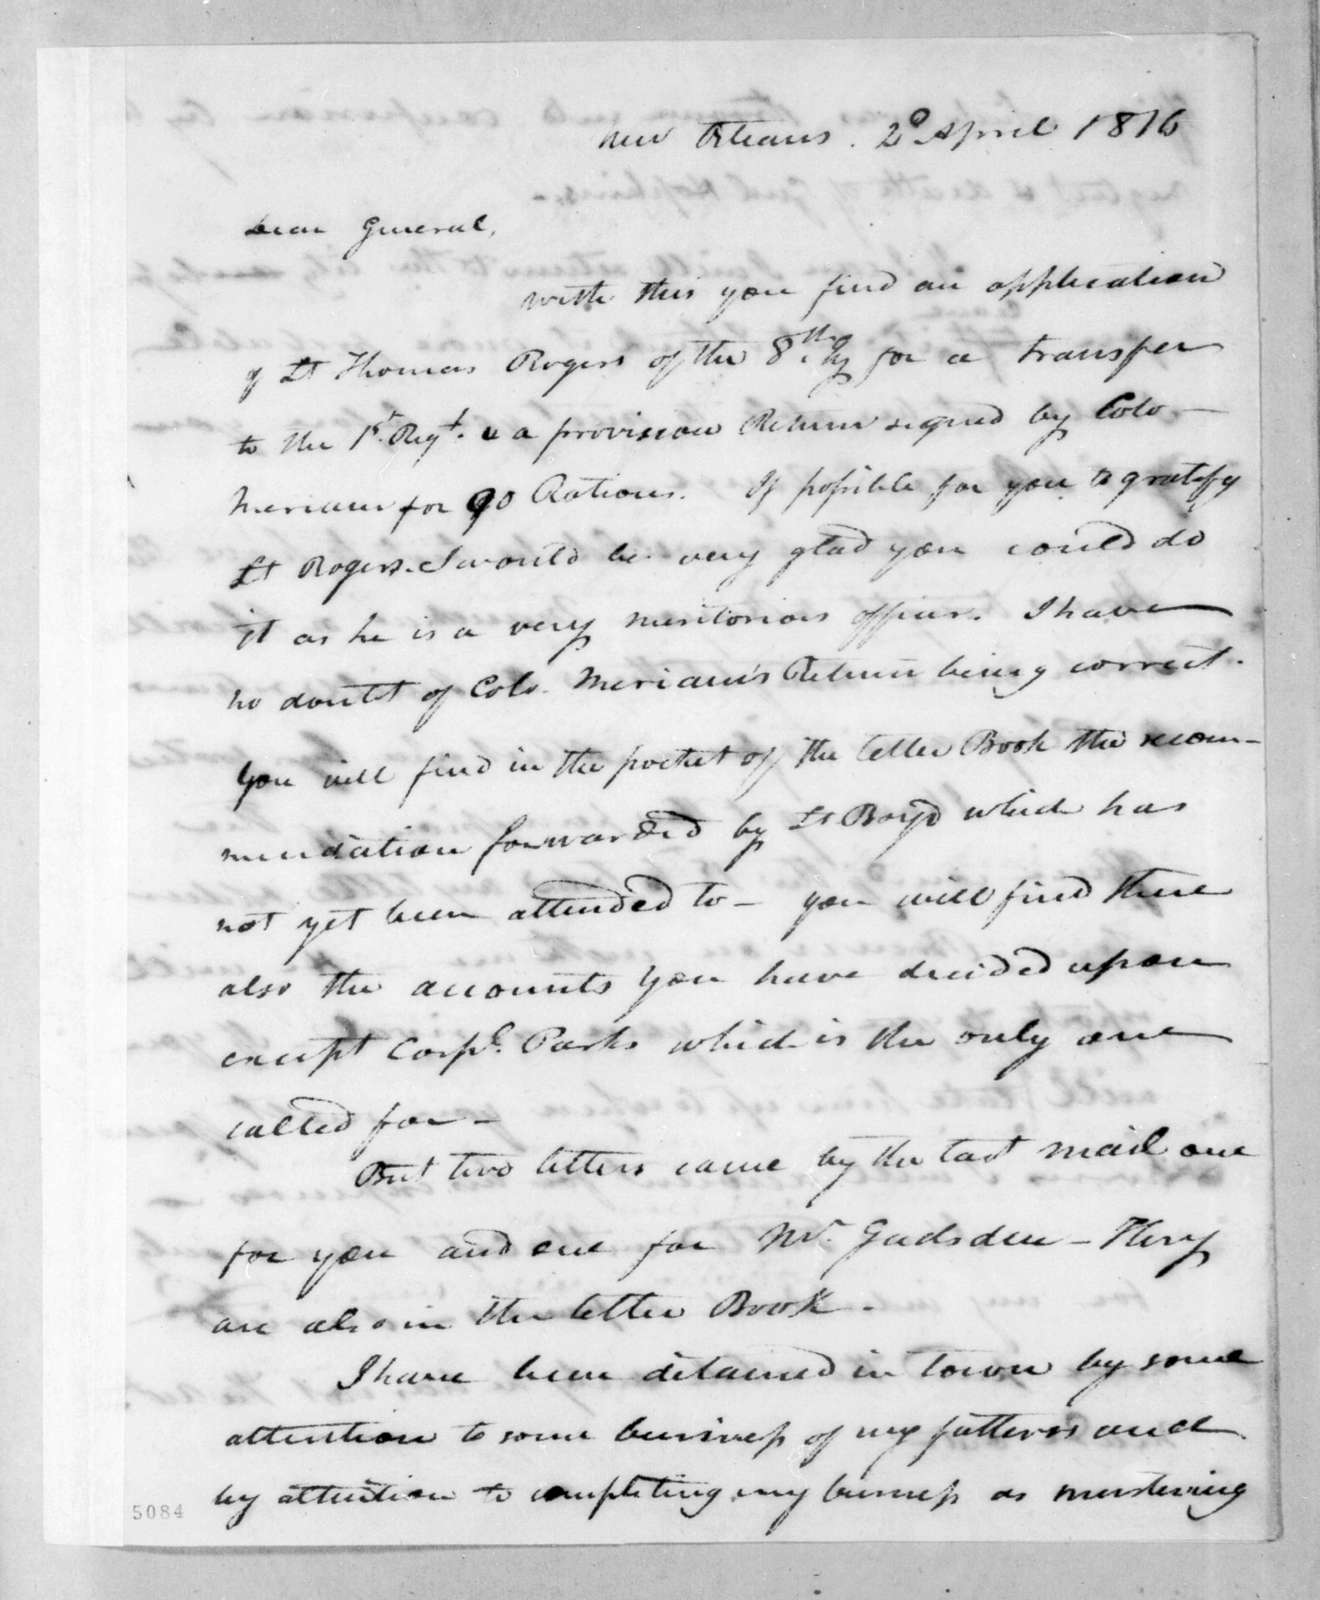 Isaac Lewis Baker to Andrew Jackson, April 2, 1816